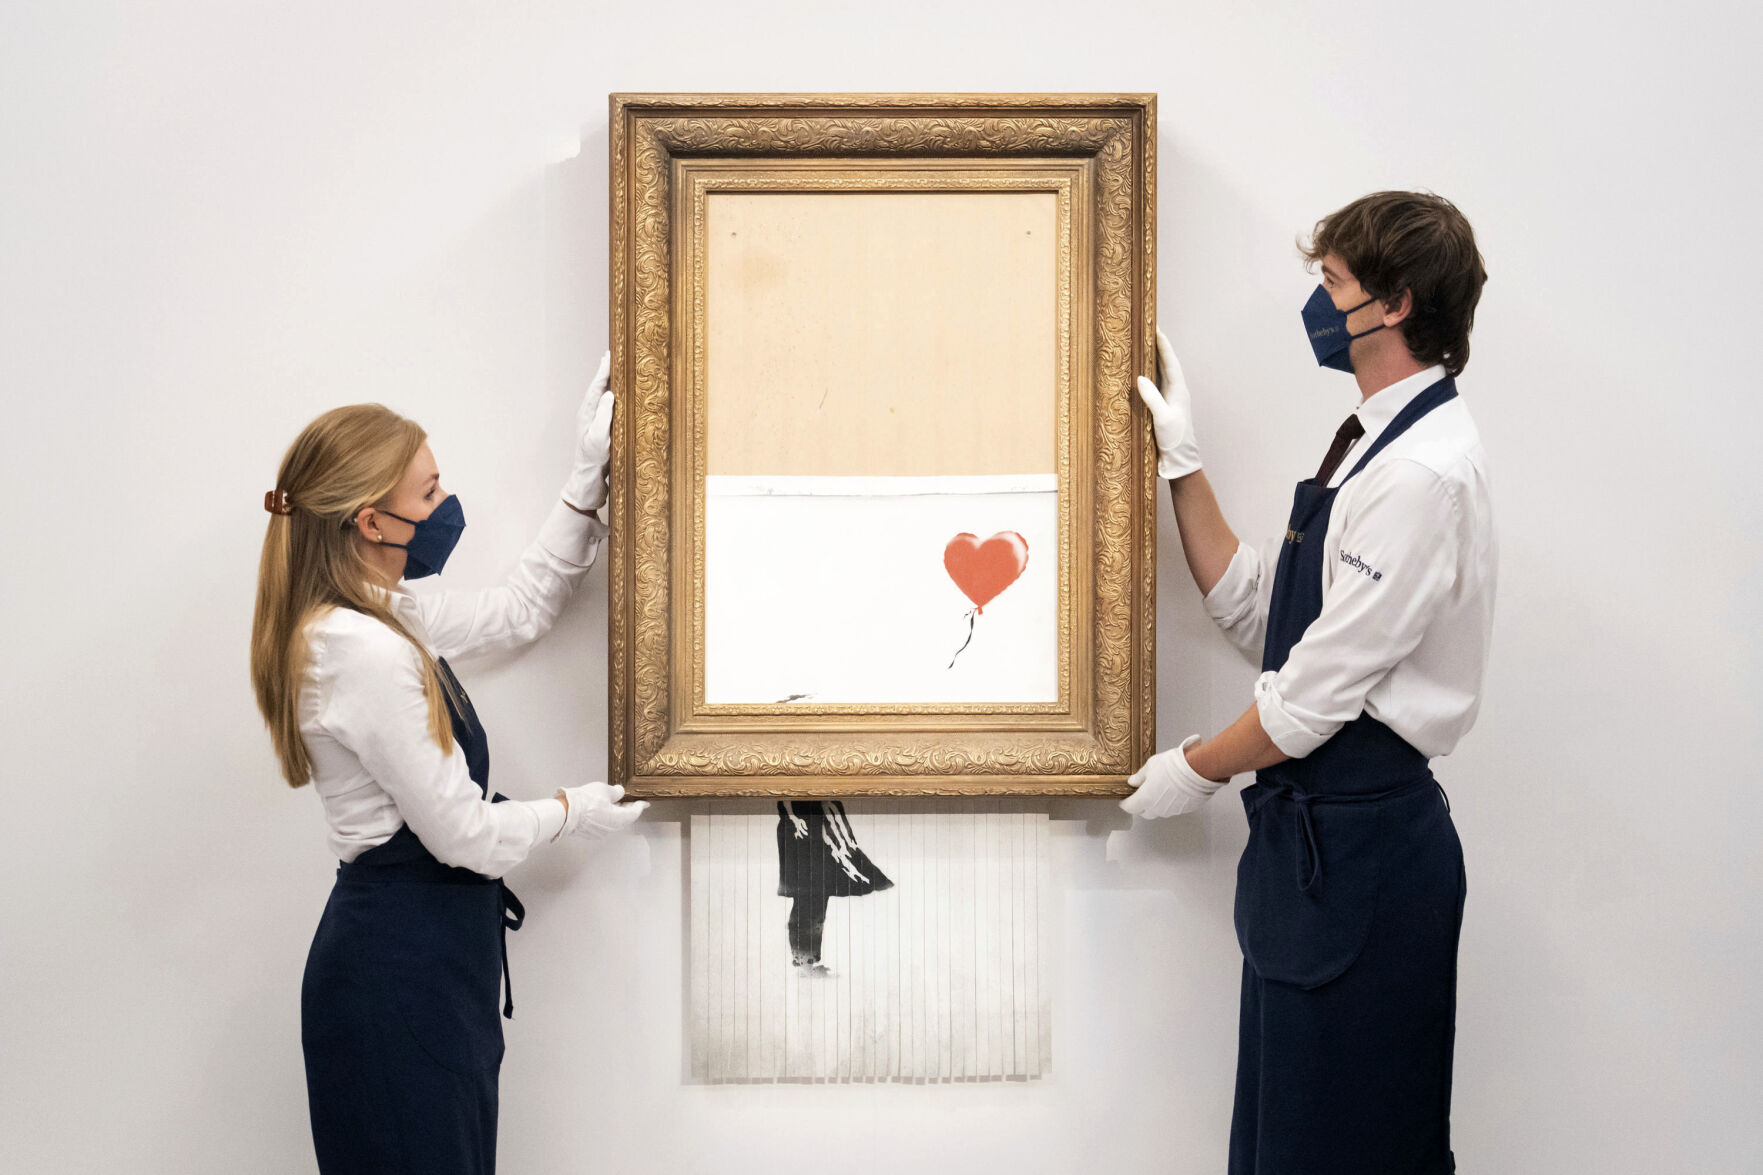 """<p>FILE - In this Sept. 3, 2021 file photo, art handlers at Sotheby's auction house hold Banksy's 'Love is in the Bin', before it returns to auction at Sotheby's, London, The work by British street artist Banksy that sensationally self-shredded just after it sold for .4 million could make several times that price at an auction on Thursday, Oct. 14, 2021. """"Love is in the Bin"""" is being offered by Sotheby's in London, with a pre-sale estimate of 4 million pounds to 6 million pounds (.5 million to .2 million). (Dominic Lipinski/PA via AP, file)</p>"""